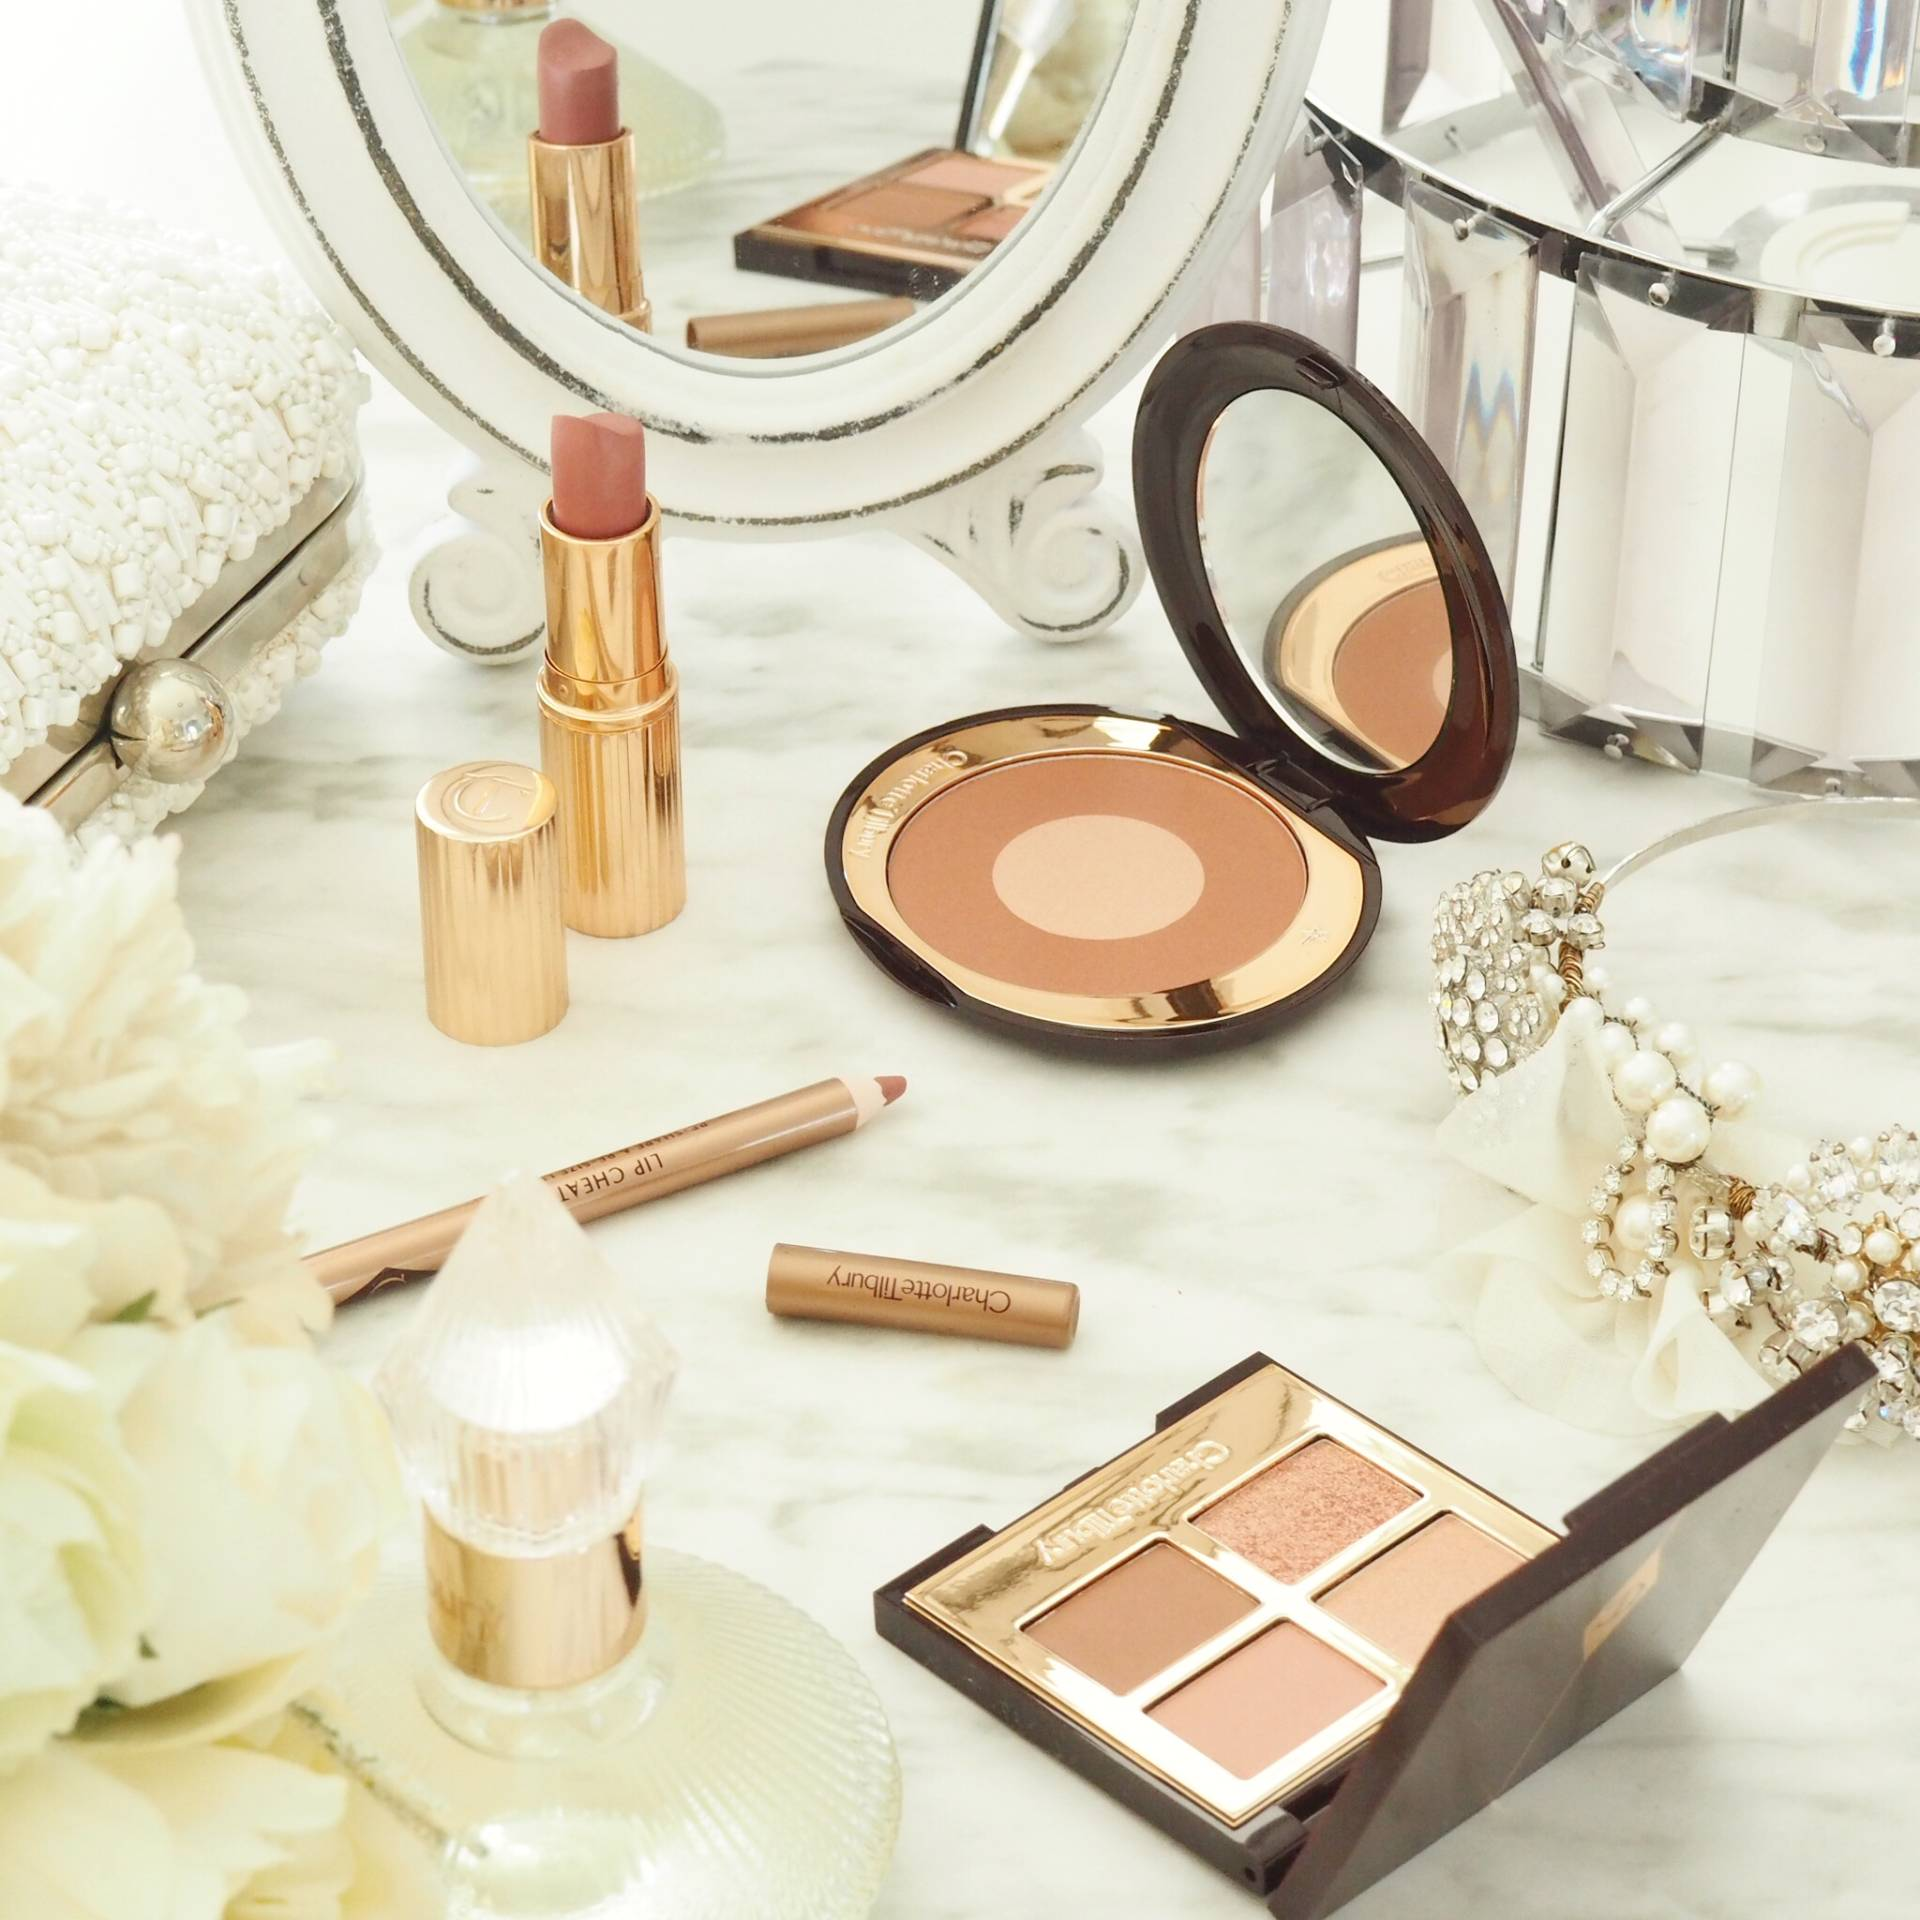 Charlotte_Tilbury_Pillow_Talk_Makeup